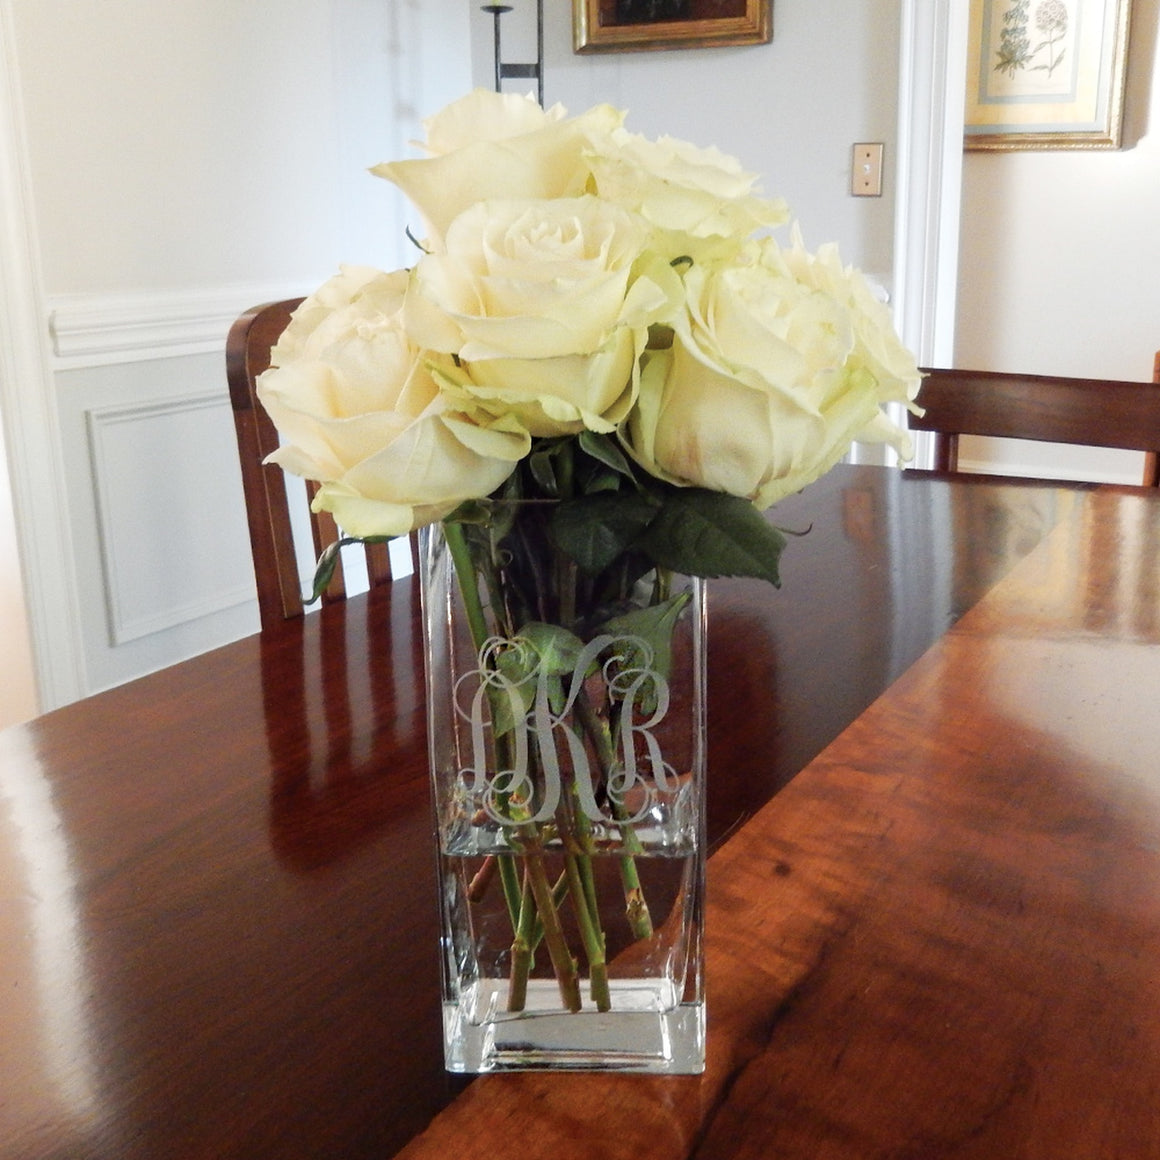 PERSONALIZED SQUARE VASE - 11""